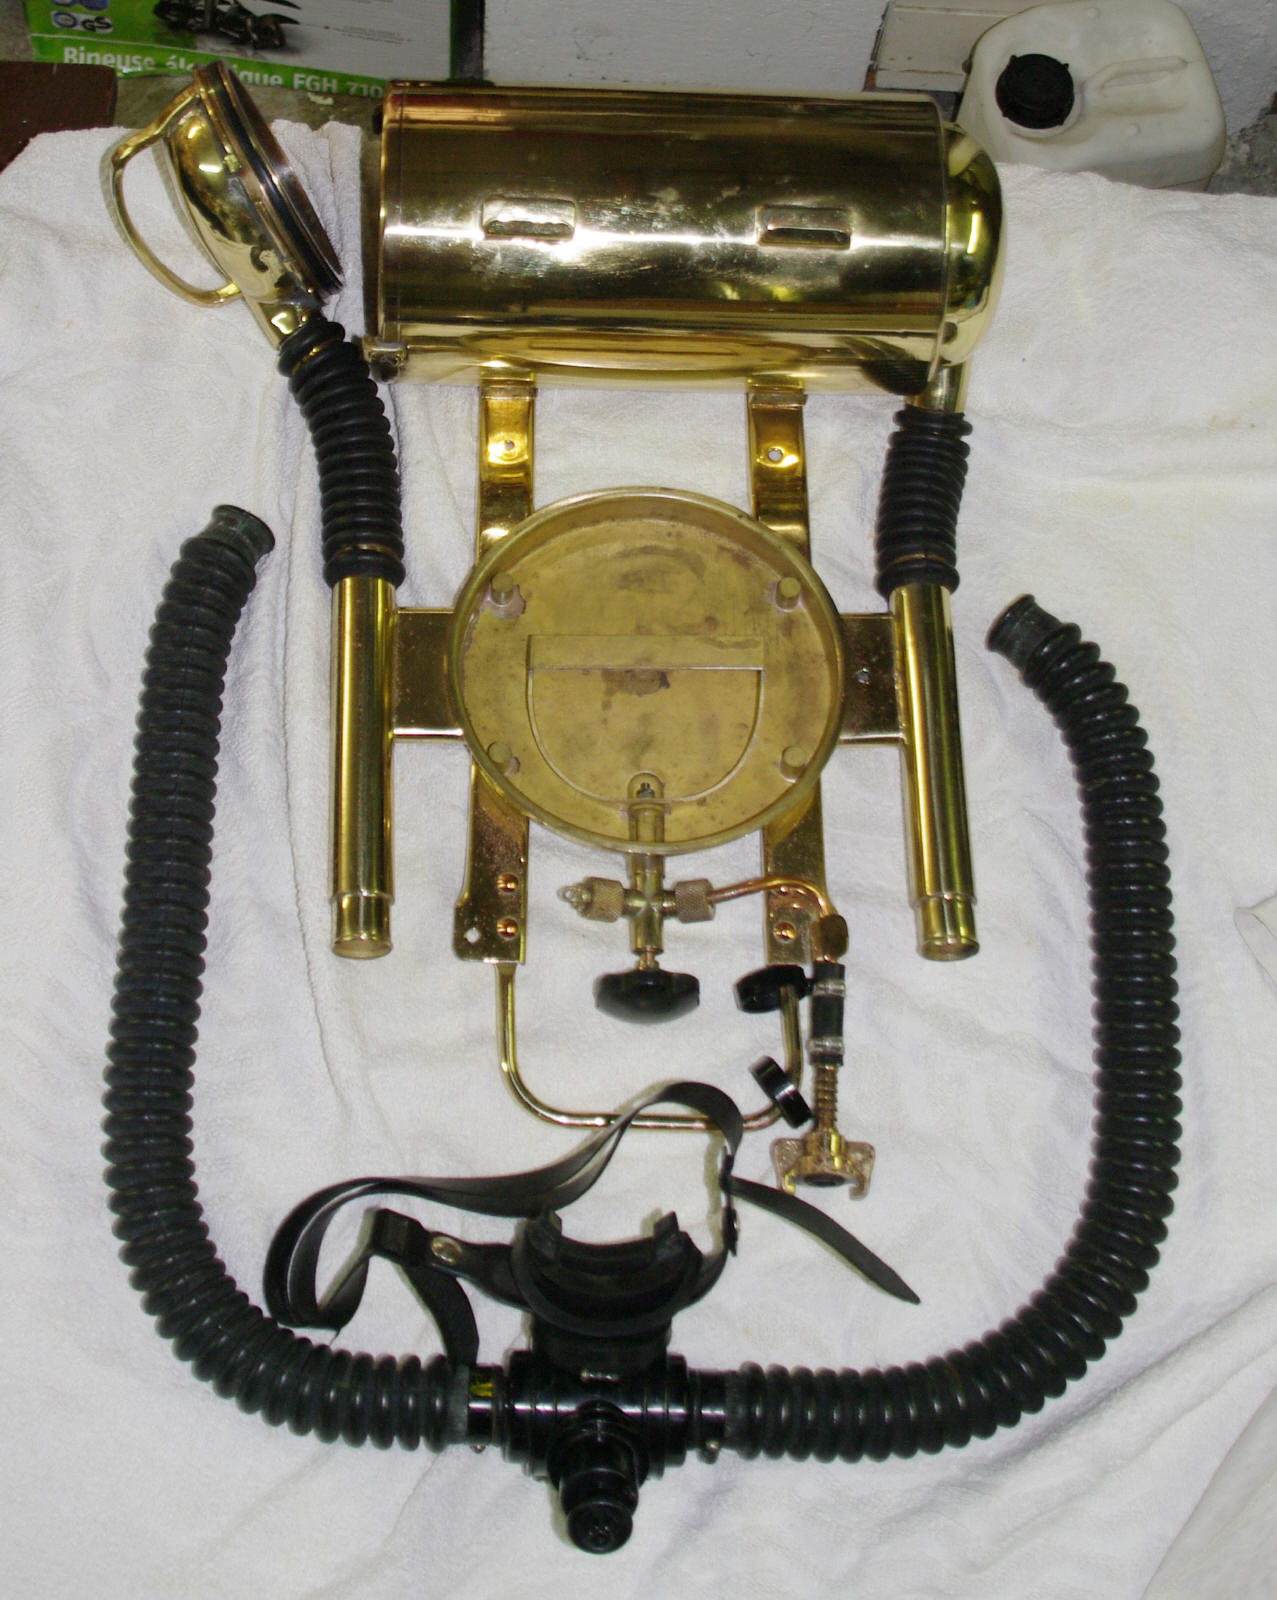 unidentified rebreather